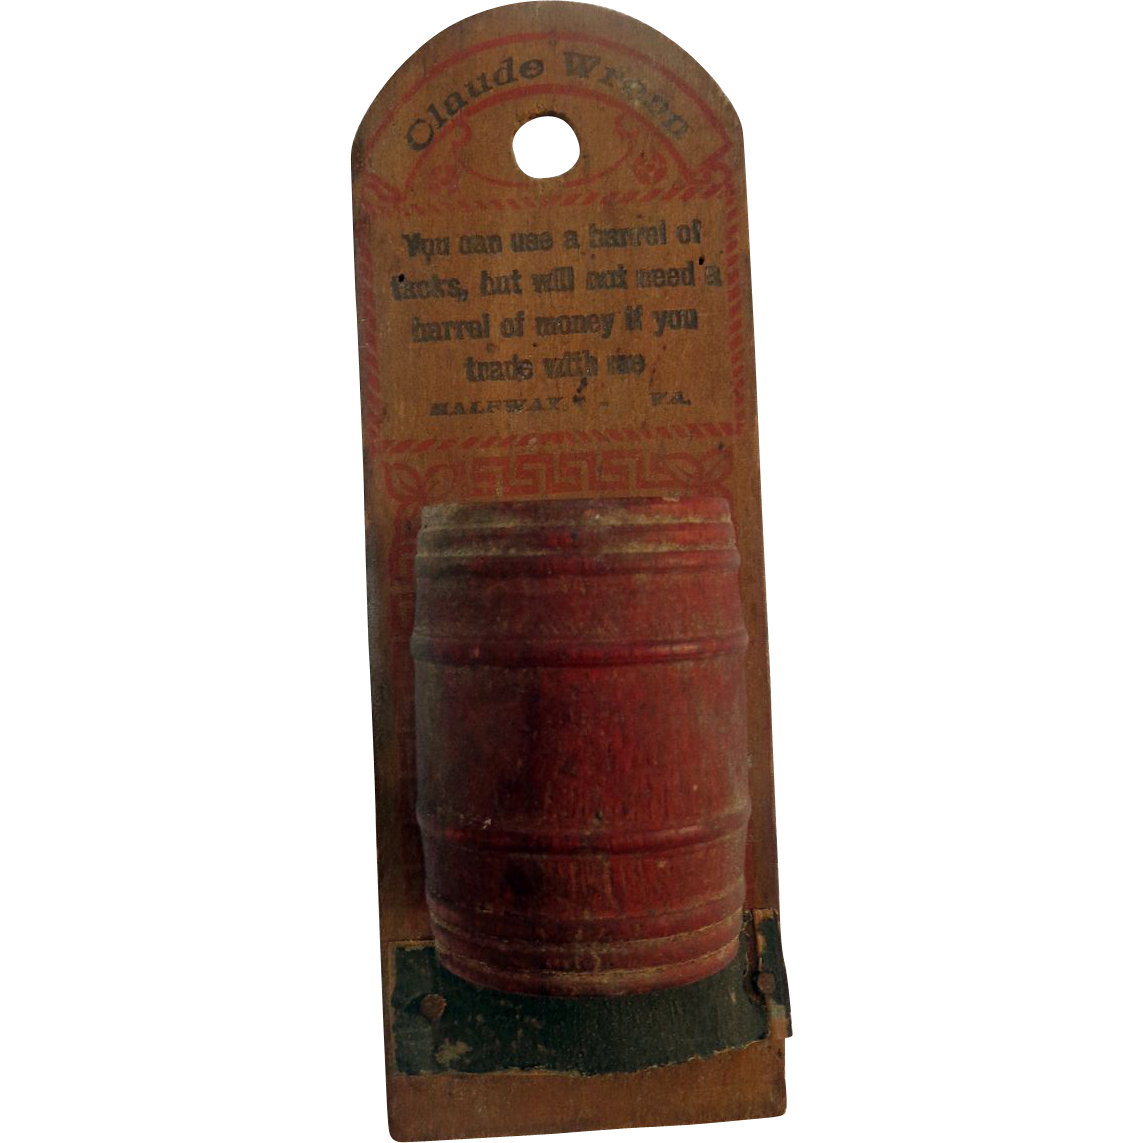 RARE Halfway, Virginia Fauquier County Advertising Barrel from Claude Wrenns General Store